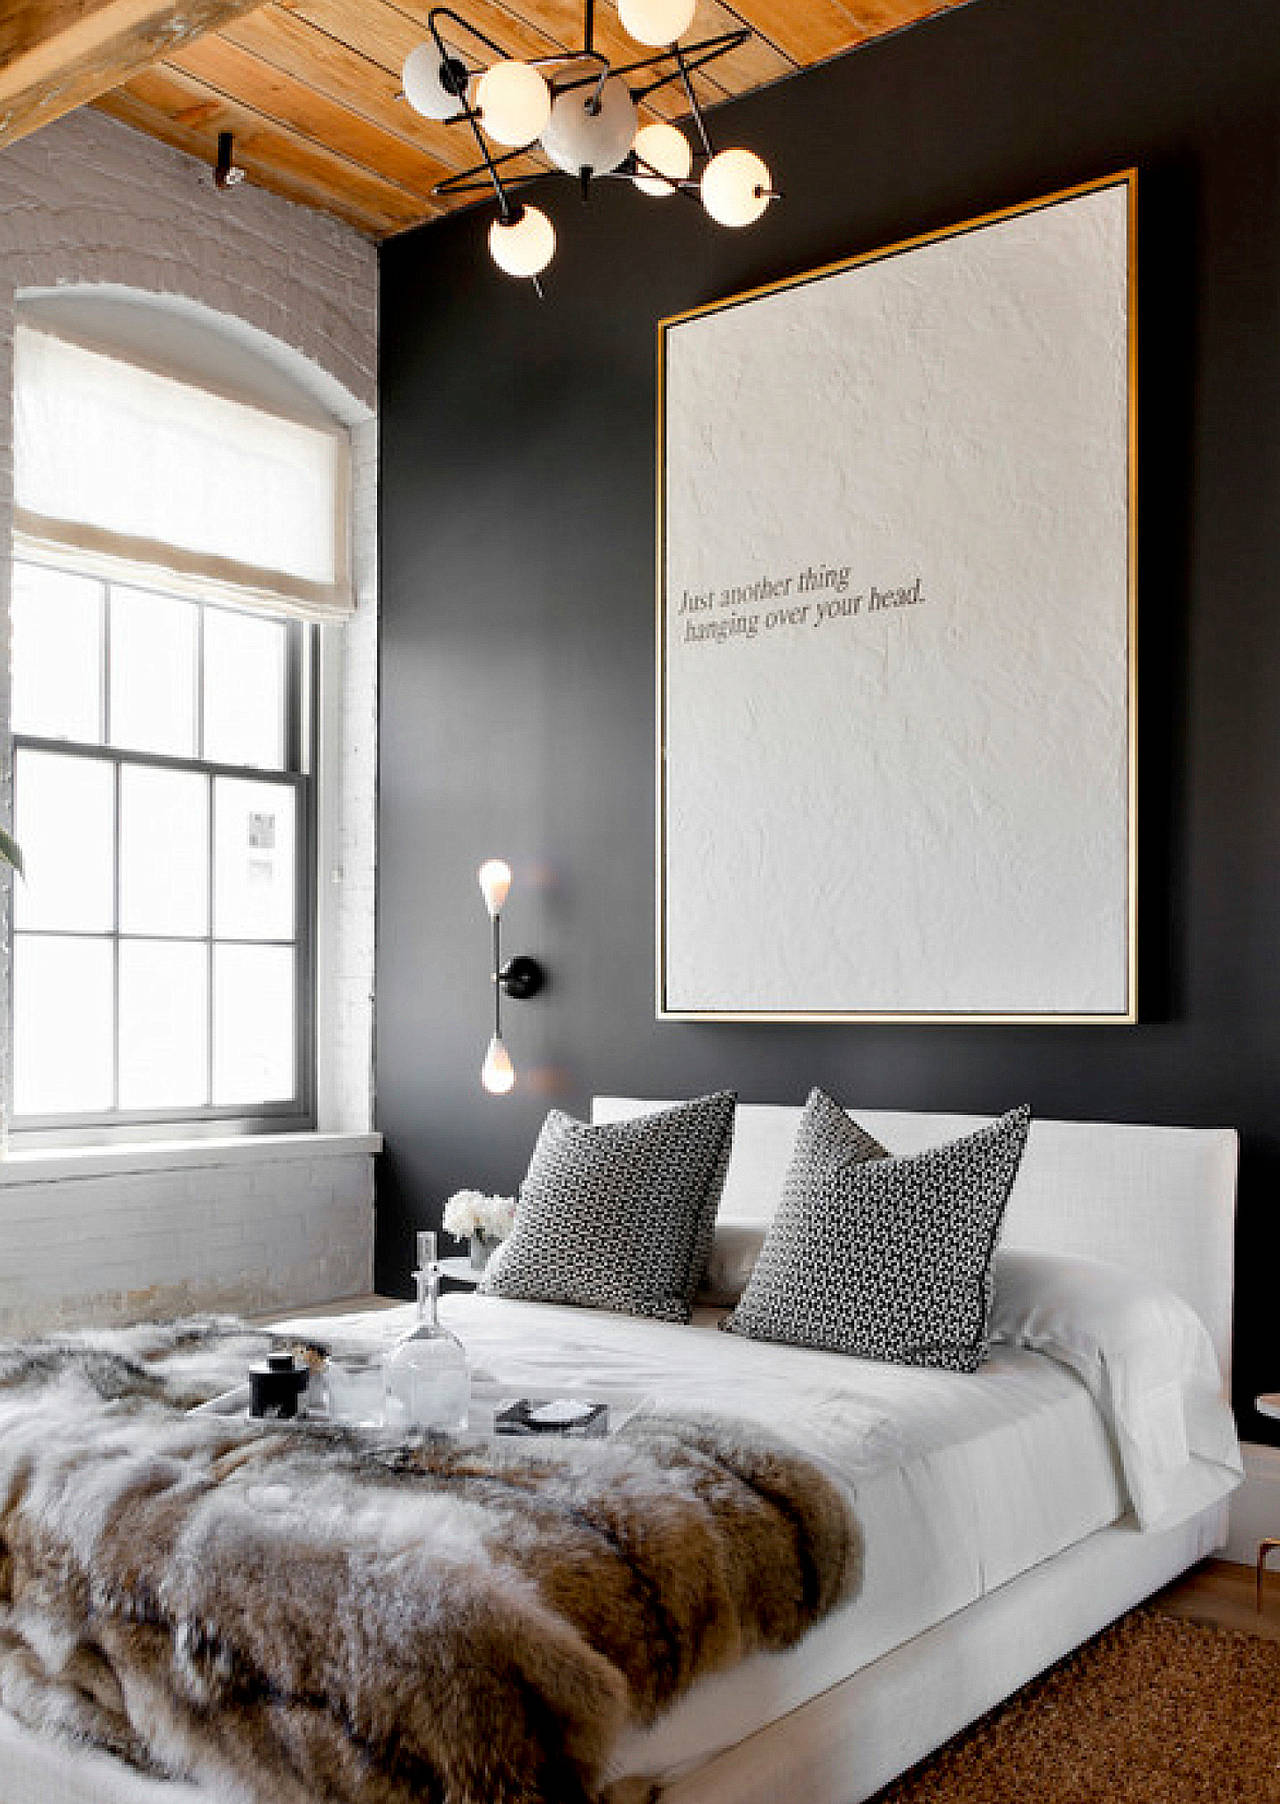 black-design-inspiration-for-a-master-bedroom-decor-1